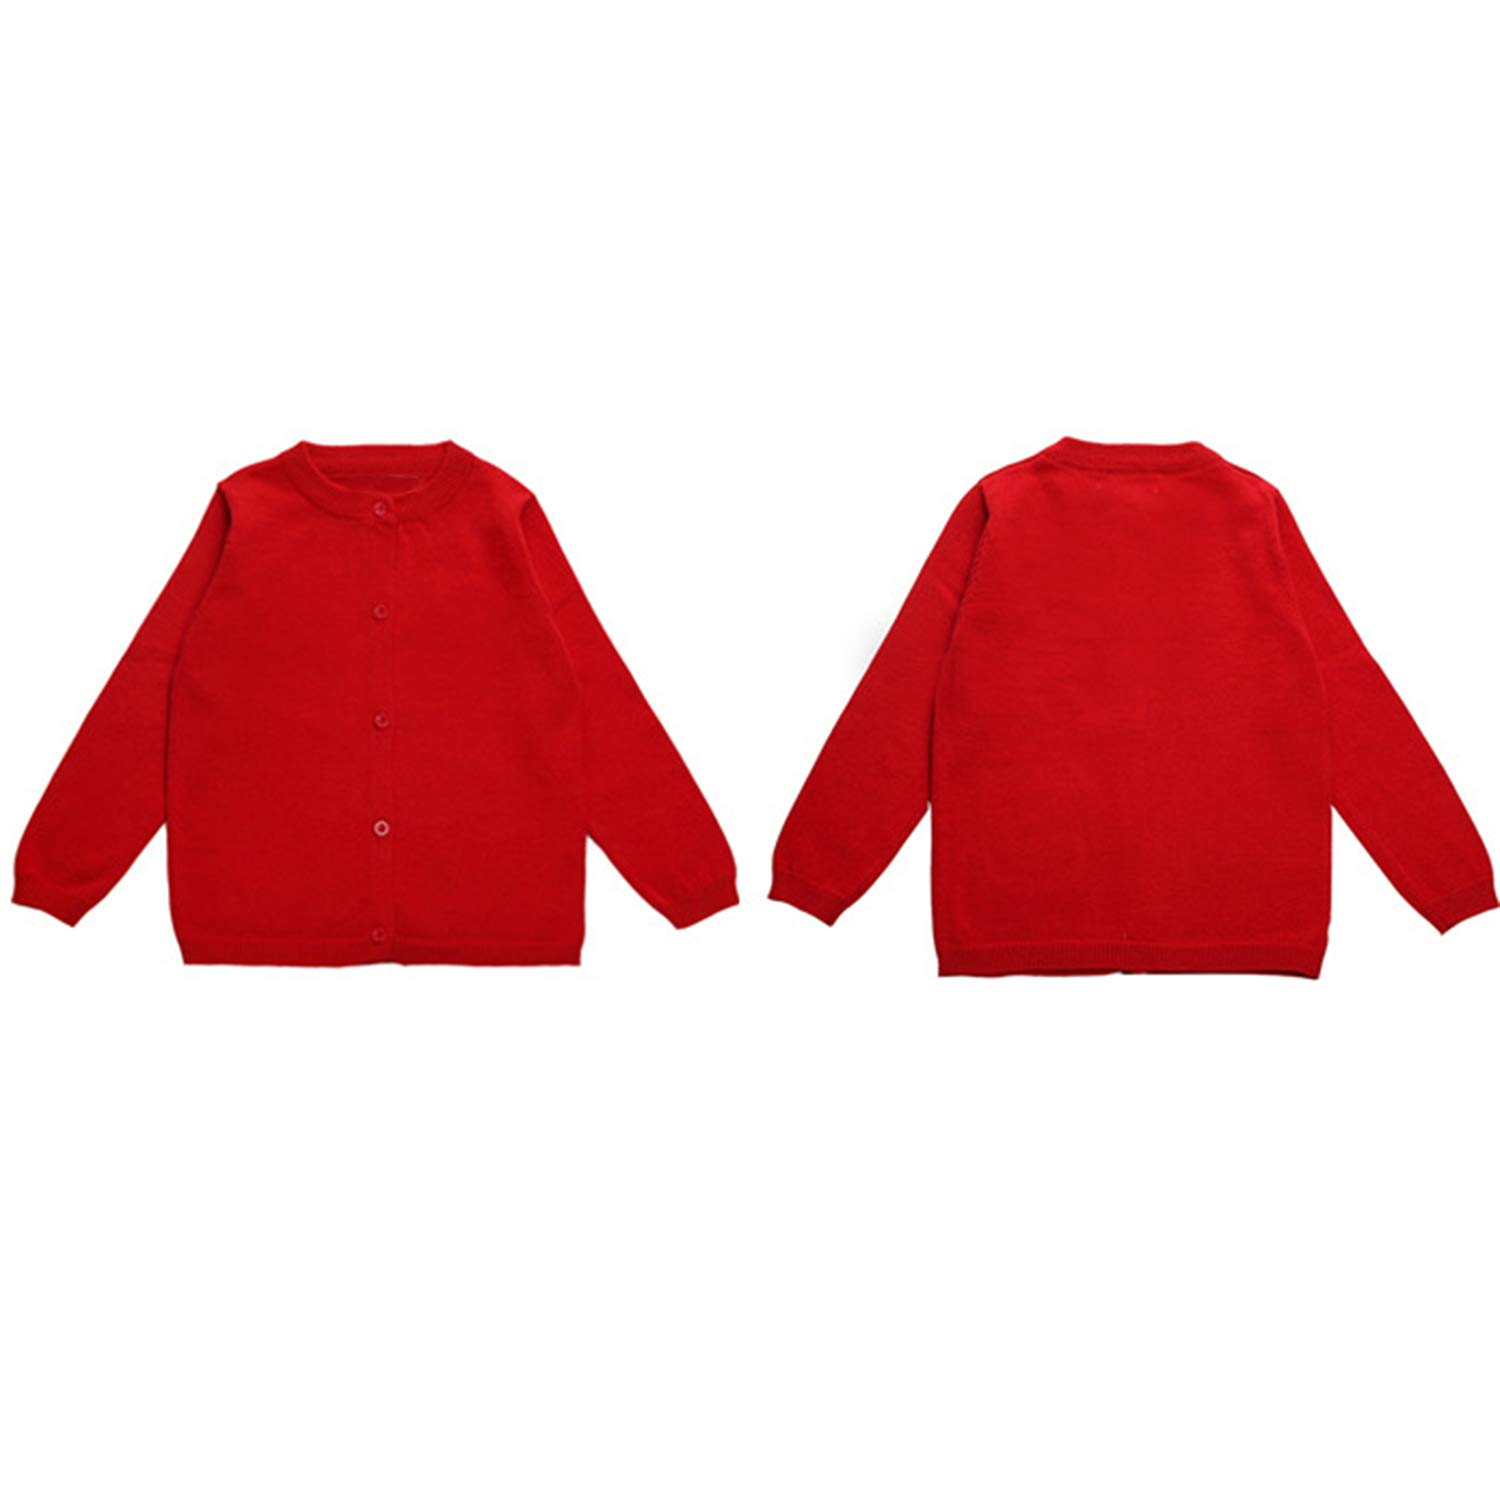 Evelin LEE Baby Boys Girls Button-Down Cardigan Solid Knitted Sweater Outwear